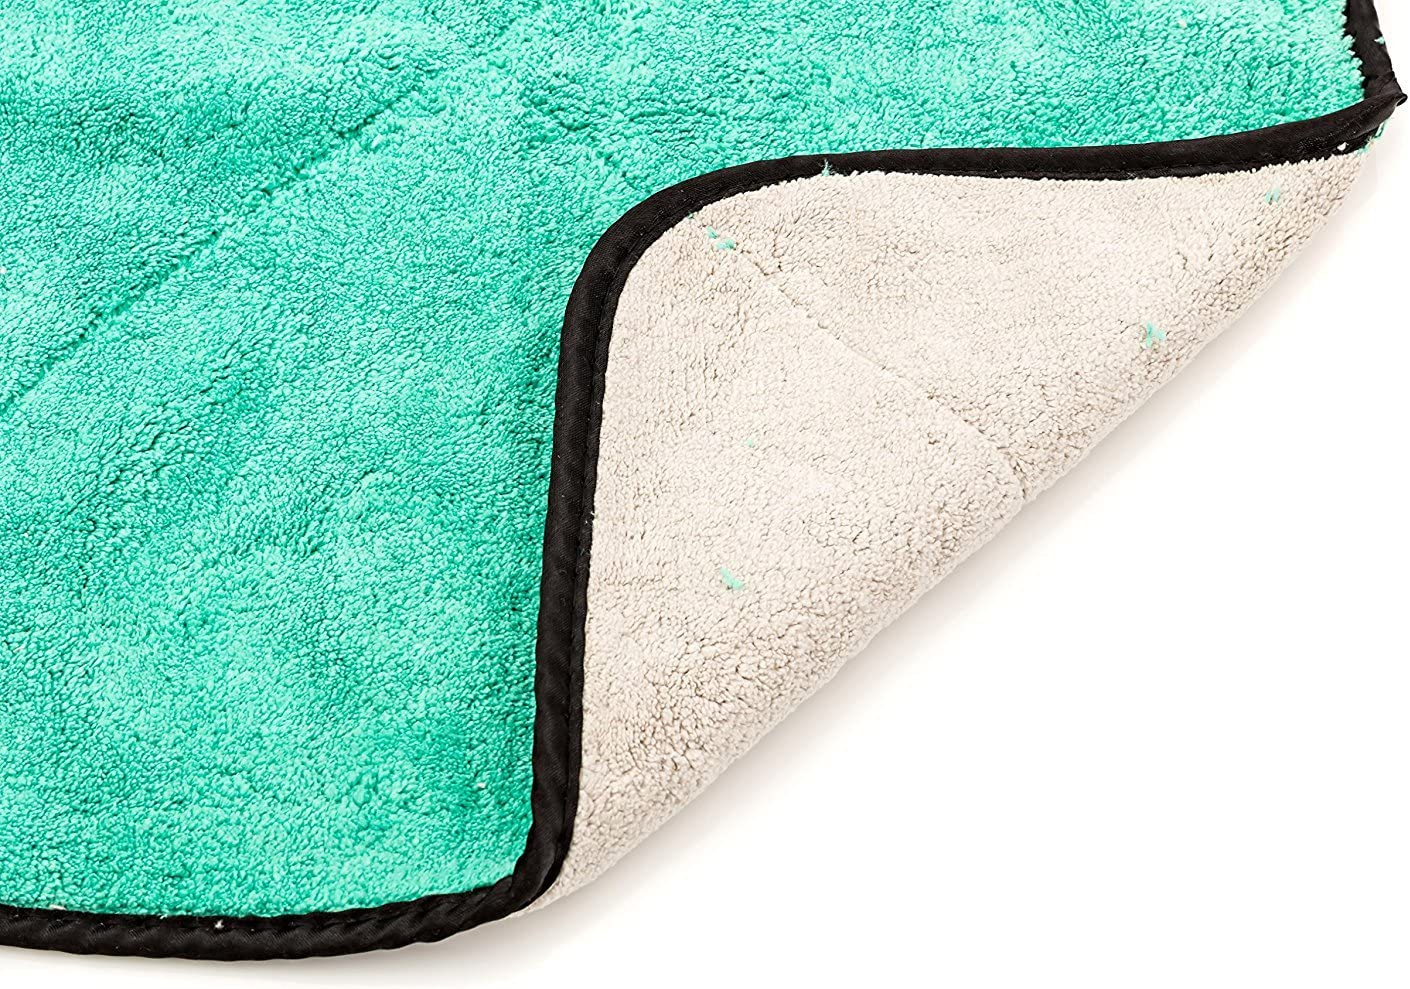 Cleaning Towel for Fine Automobile Surfaces Car Windows Use Wet//Dry- 2 Interiors Dry Rite Heavy Weight Premium Plush 14 x 14 Microfiber Cloth- Ultra Thick- 700 GSM- Polishing Detailing Glass